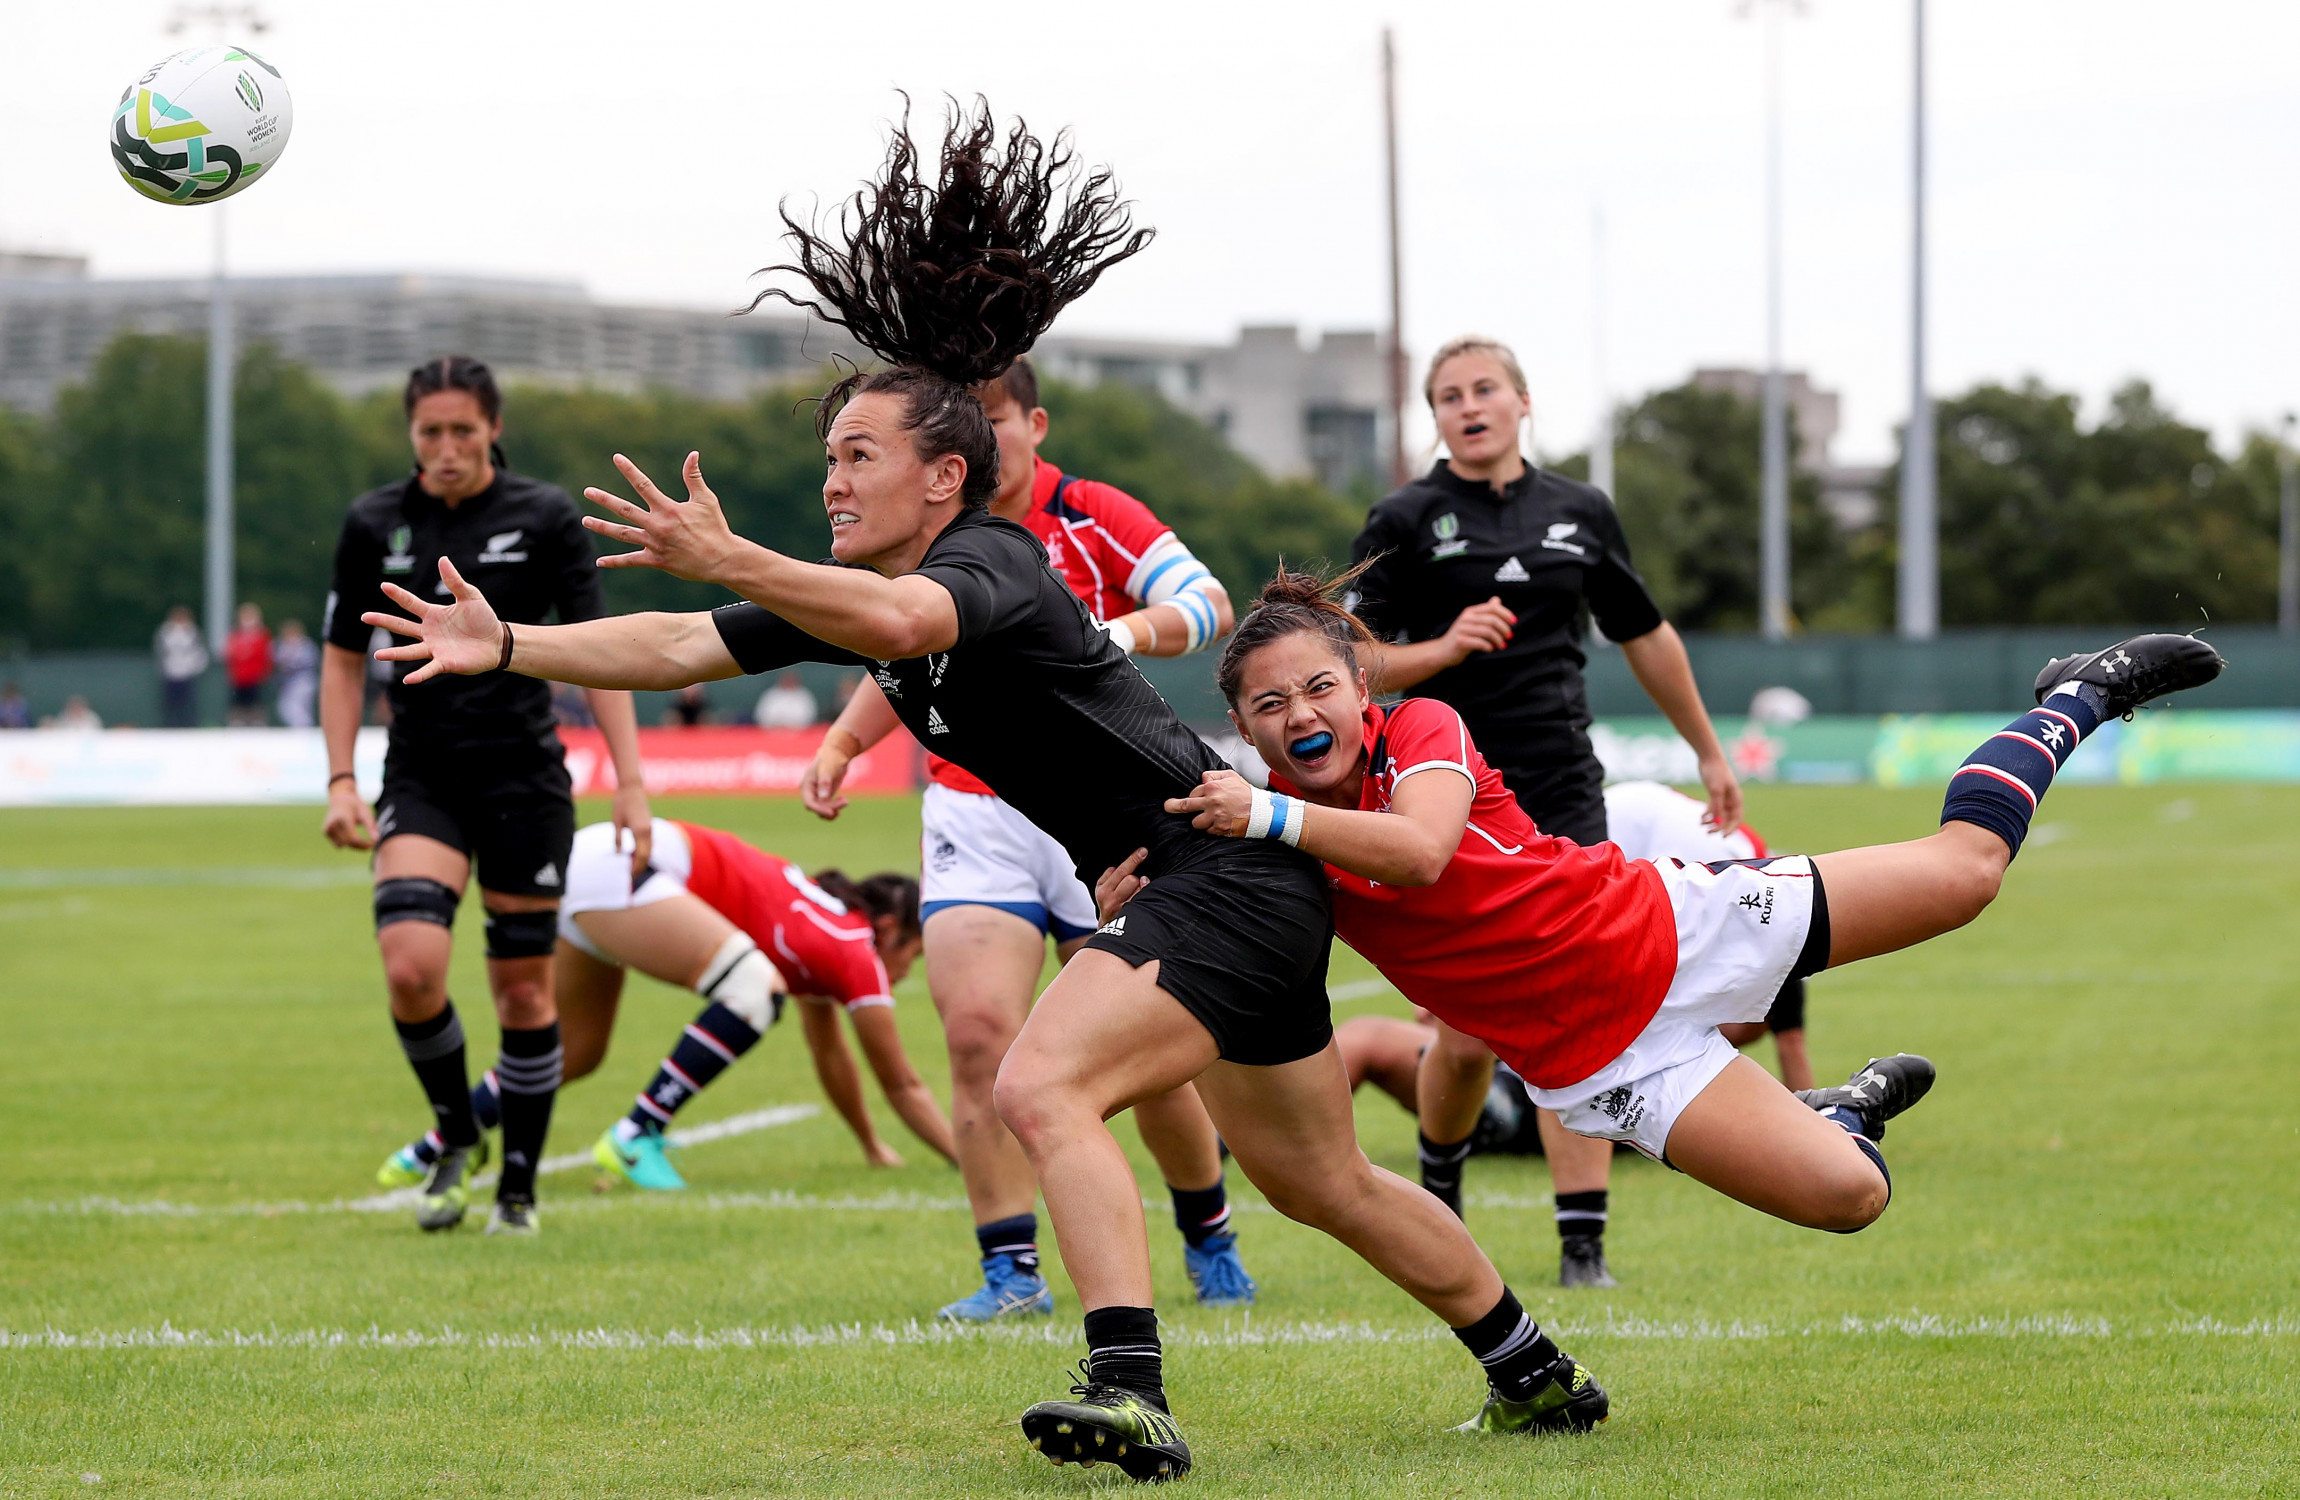 New Zealand thrash Hong Kong 121-0 in Women's Rugby World Cup